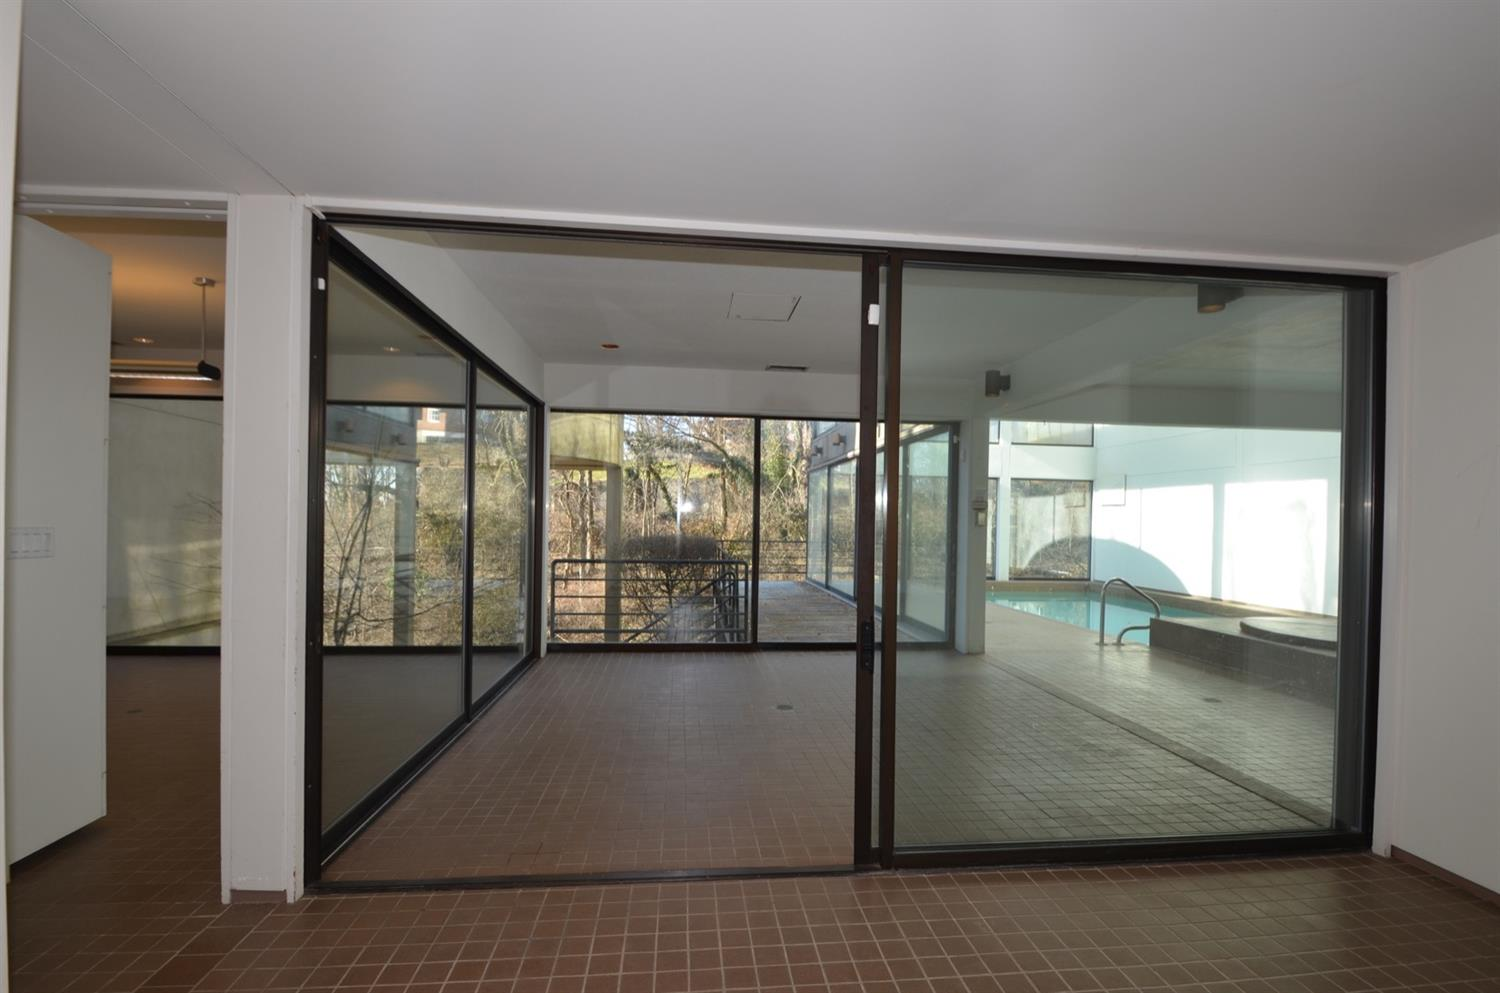 The lower level pool entry area opens to an outdoor deck and provides space to eating and entertaining poolside.